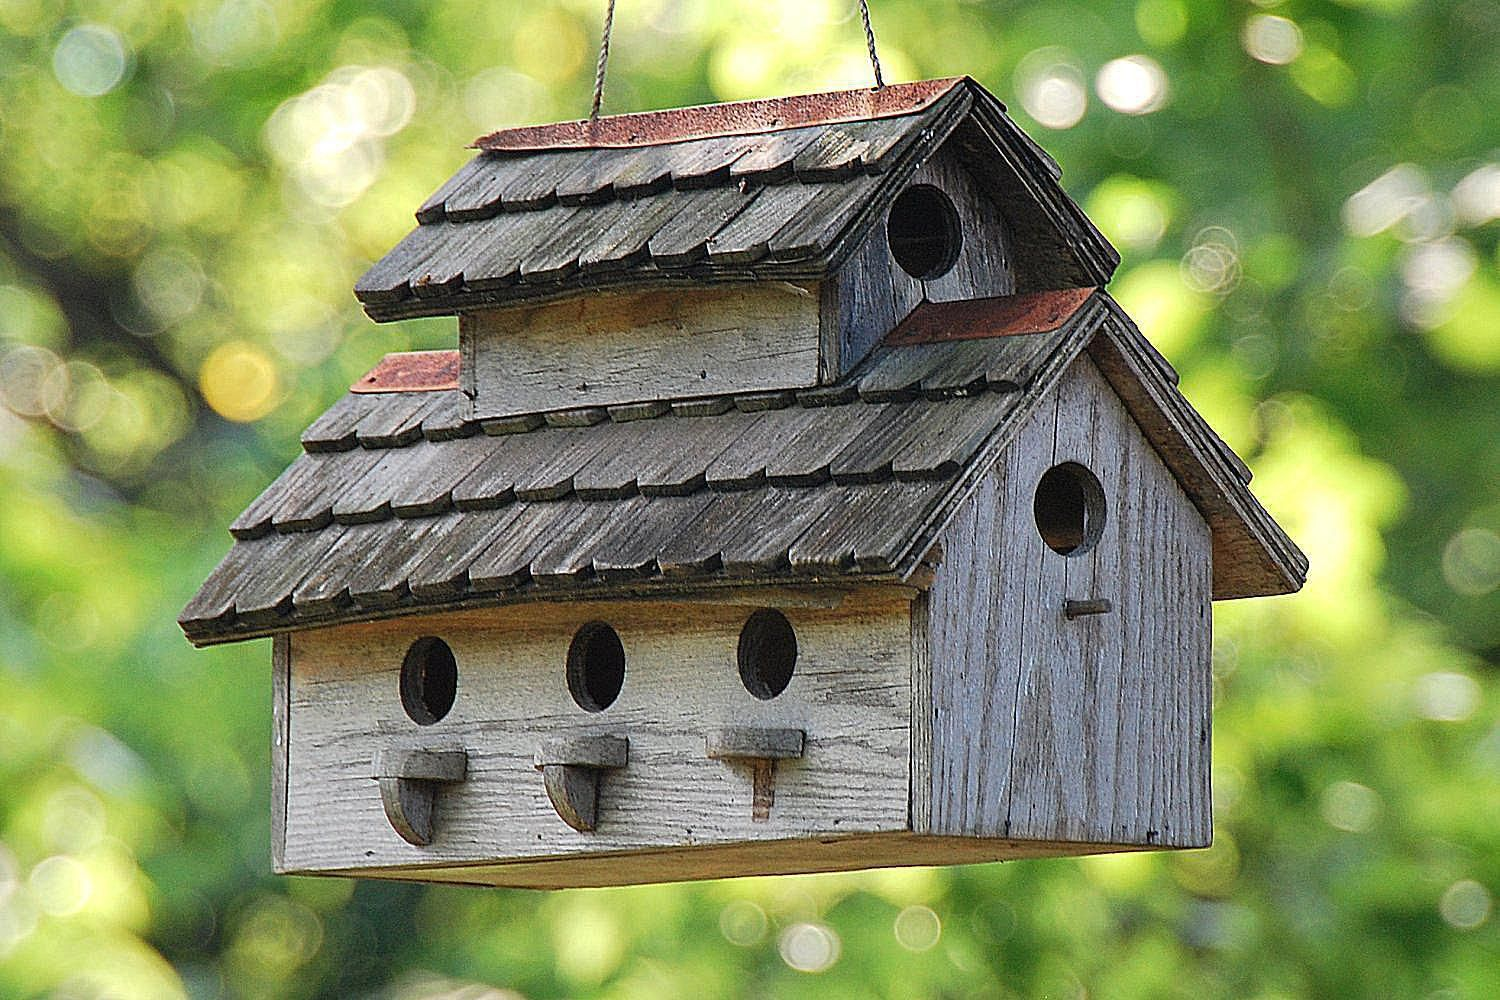 Are You Ready To Build The Very Best Birdhouse Building